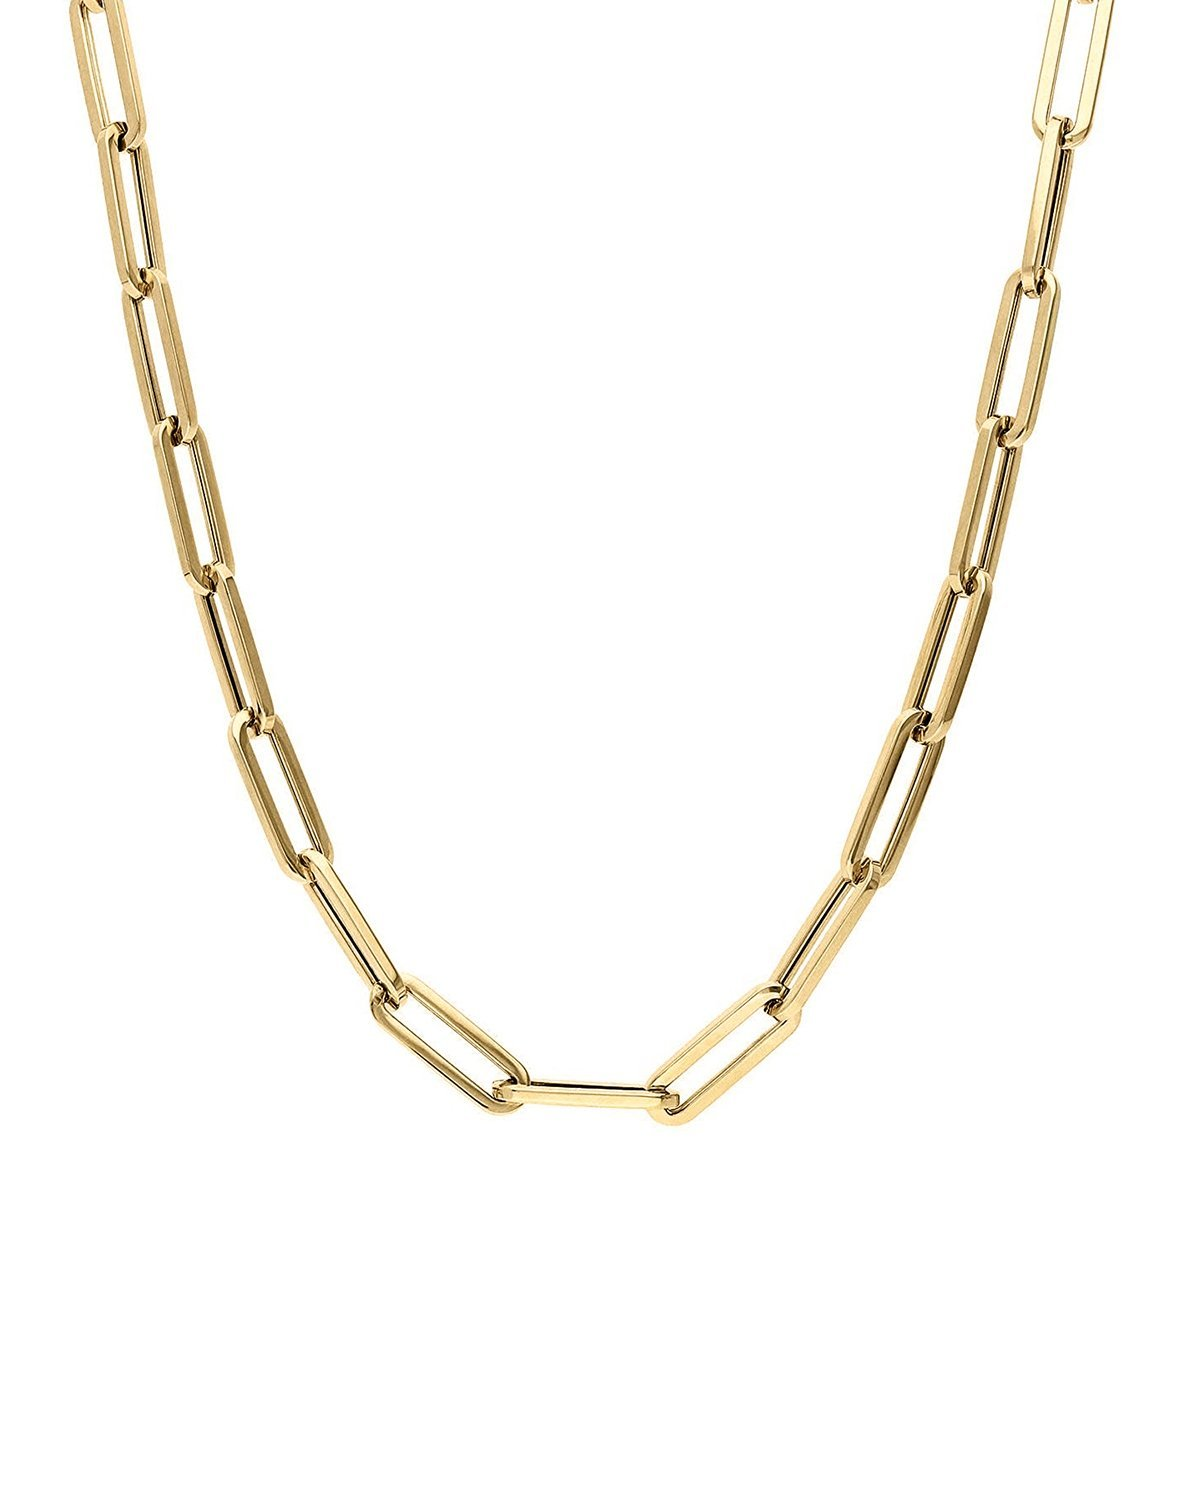 HEAVYWEIGHT PAPERCLIP CHAIN - 14k Gold Vermeil